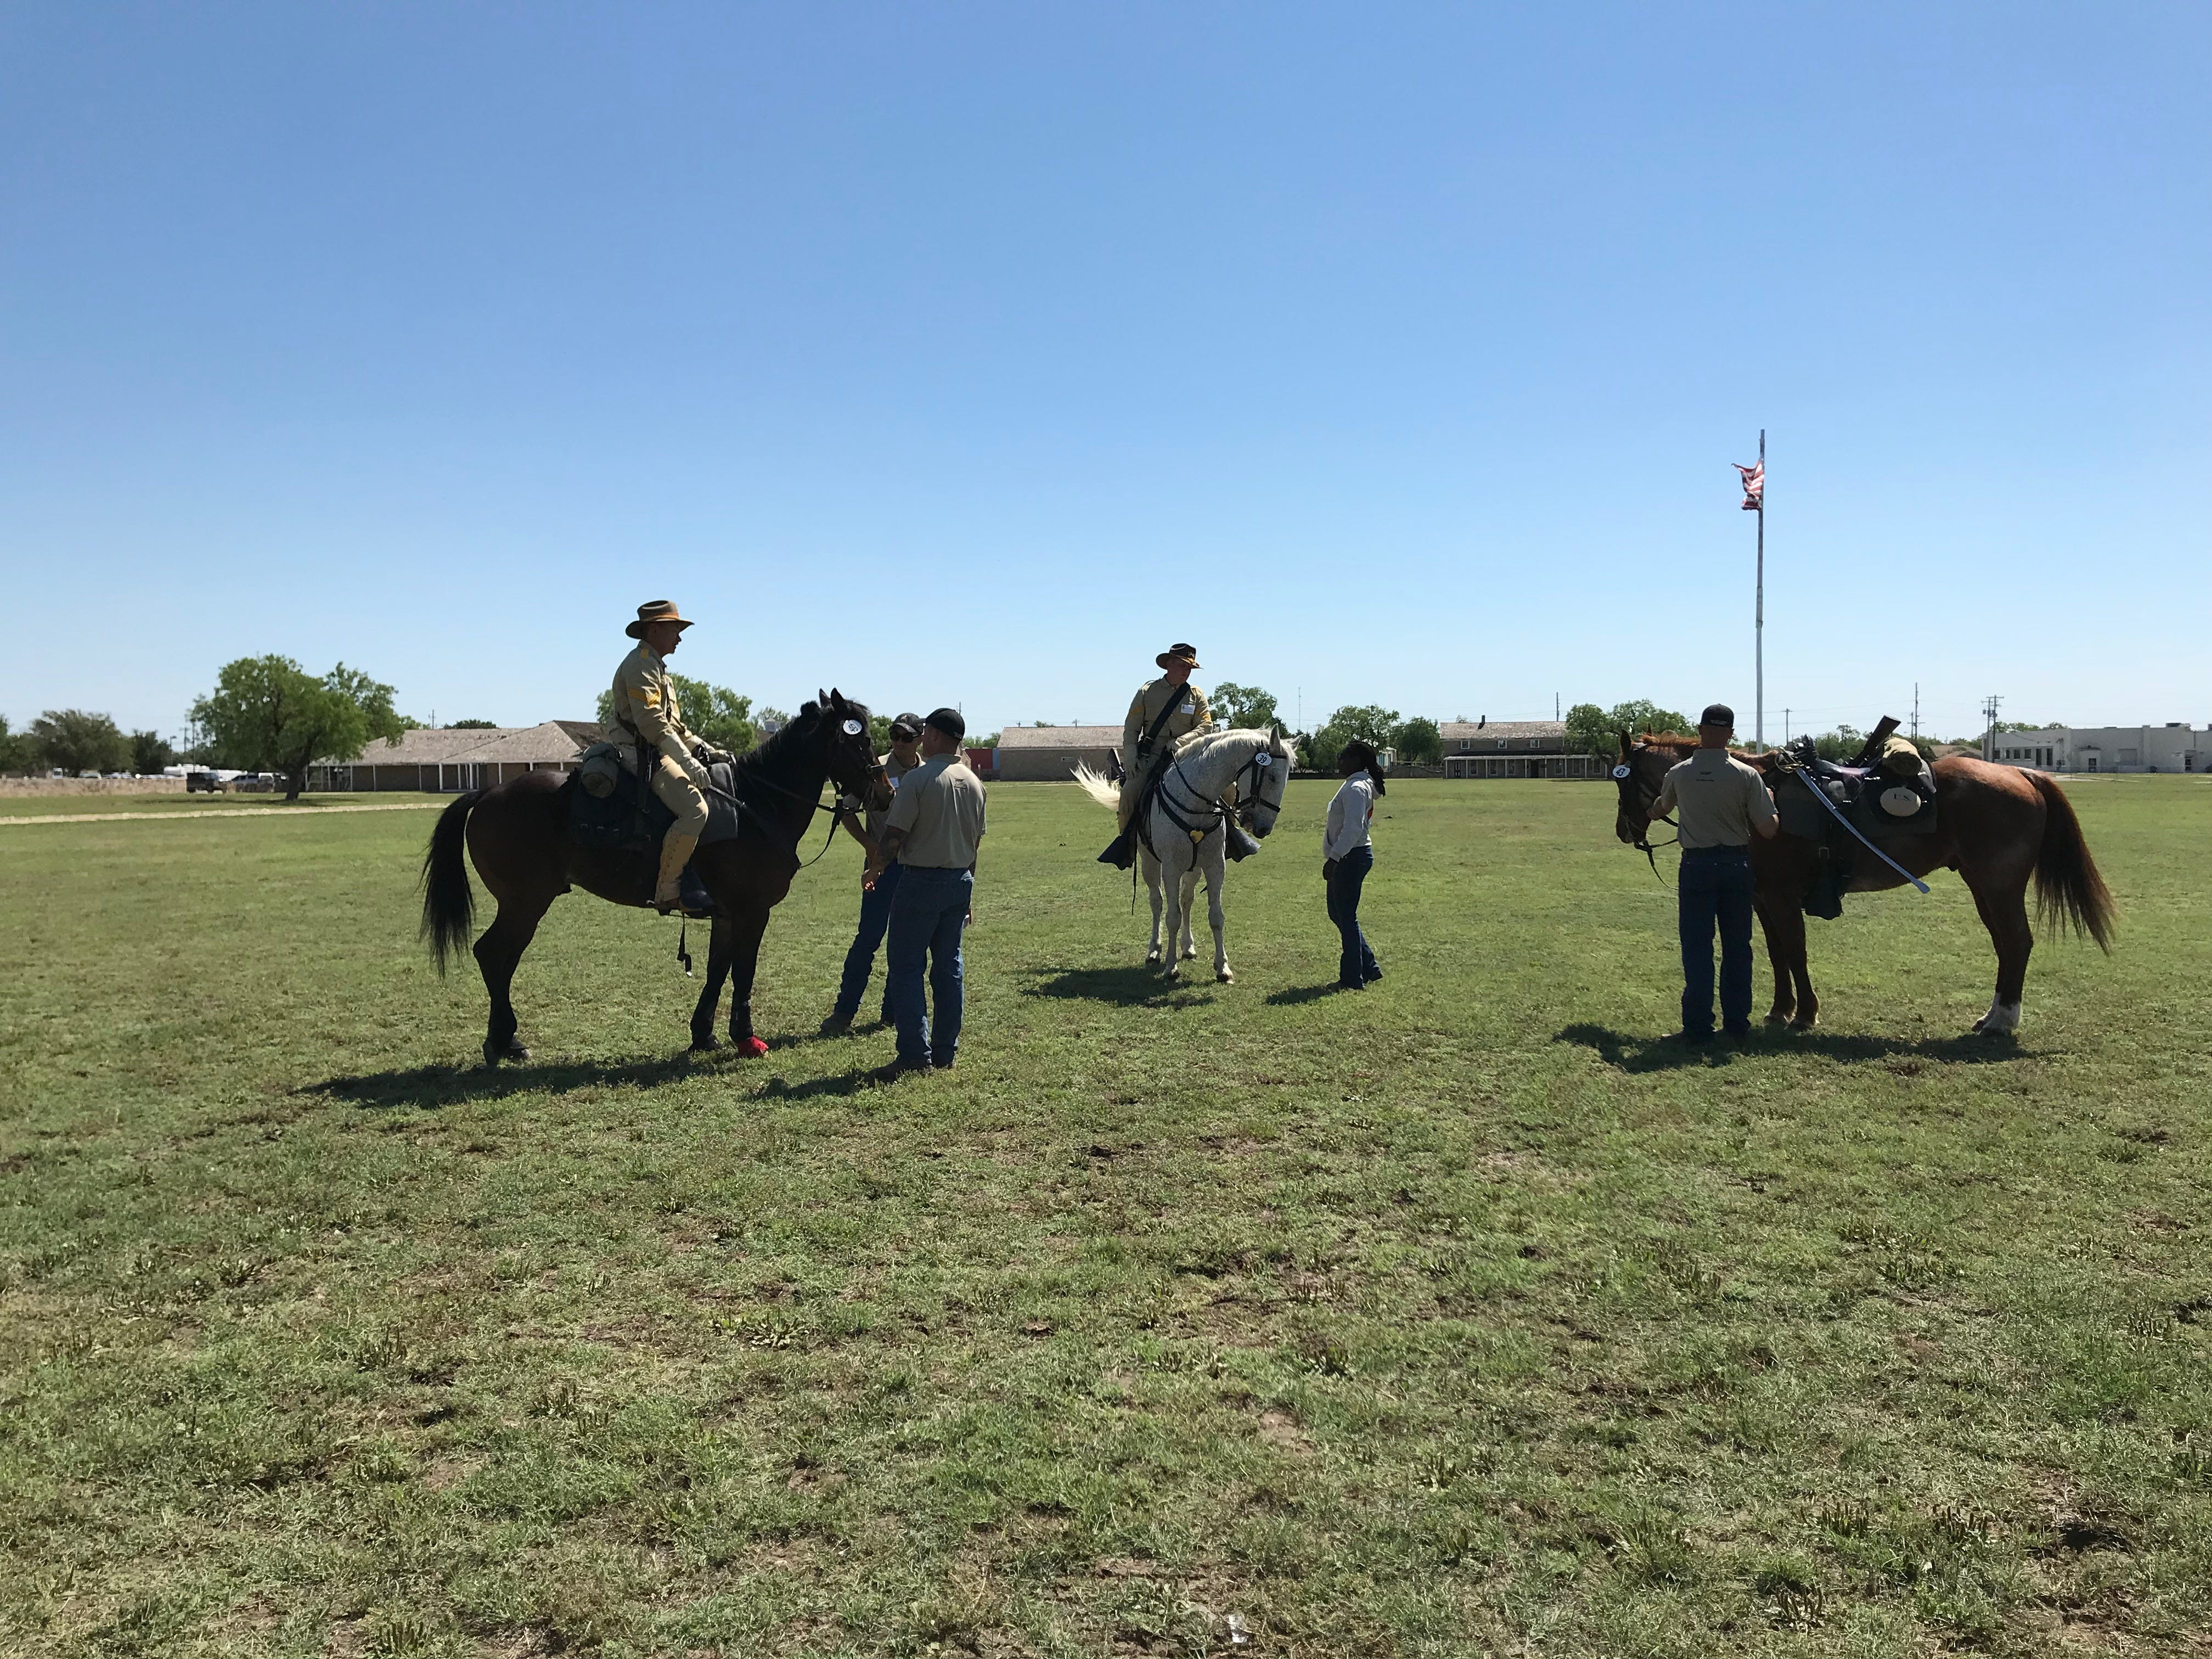 The riders and horses at the Regional Cavalry Competition bask in the sun at Fort Concho, 630 S. Oakes St. on Friday, April 26, 2019.